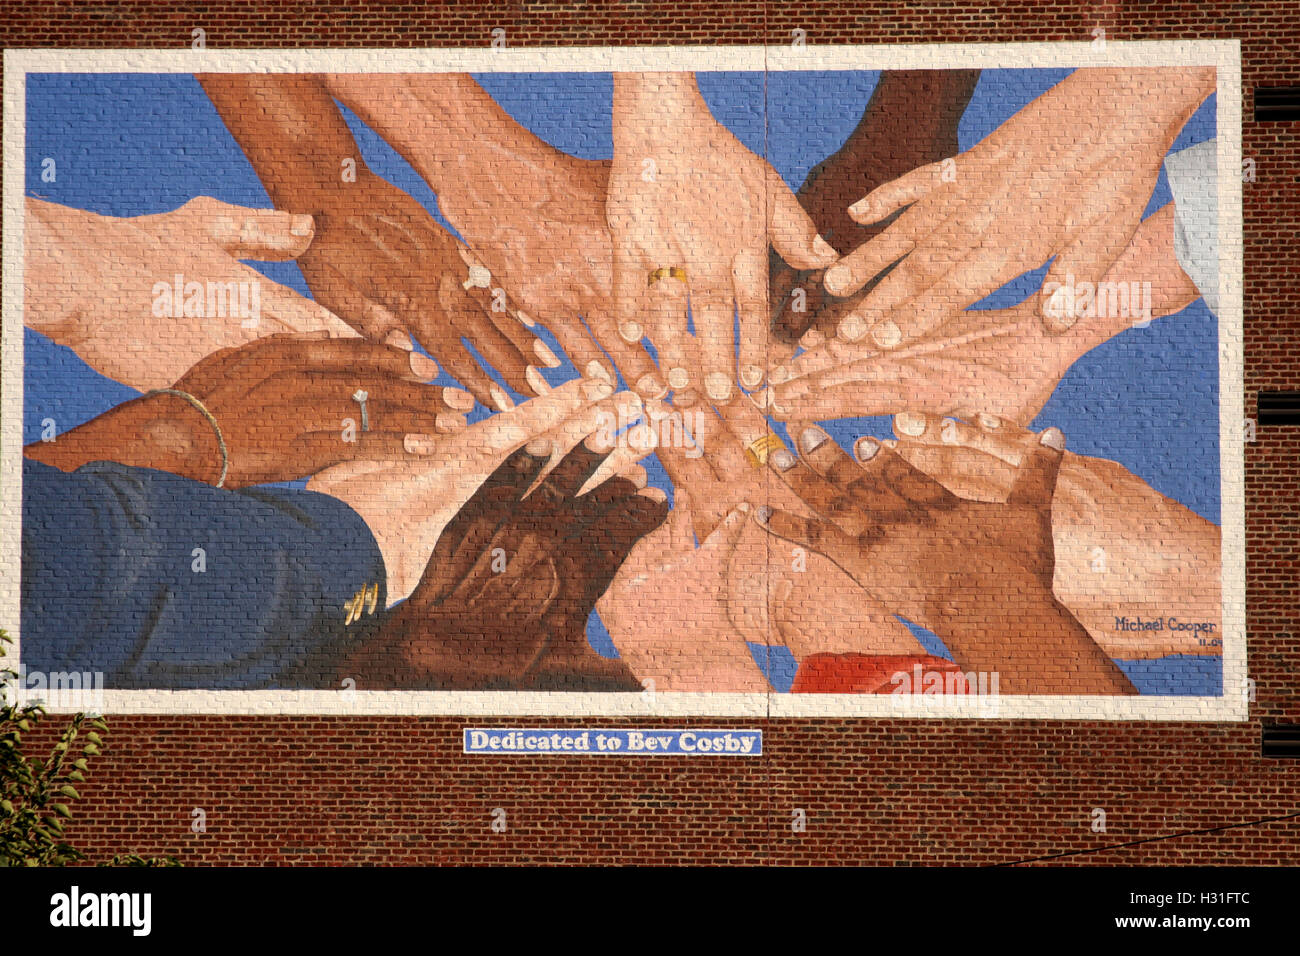 Lynchburg, Virginia, USA. Wall mural commissioned as a tribute to the late Rev. Bev Cosby, a local minister/social activist. Stock Photo